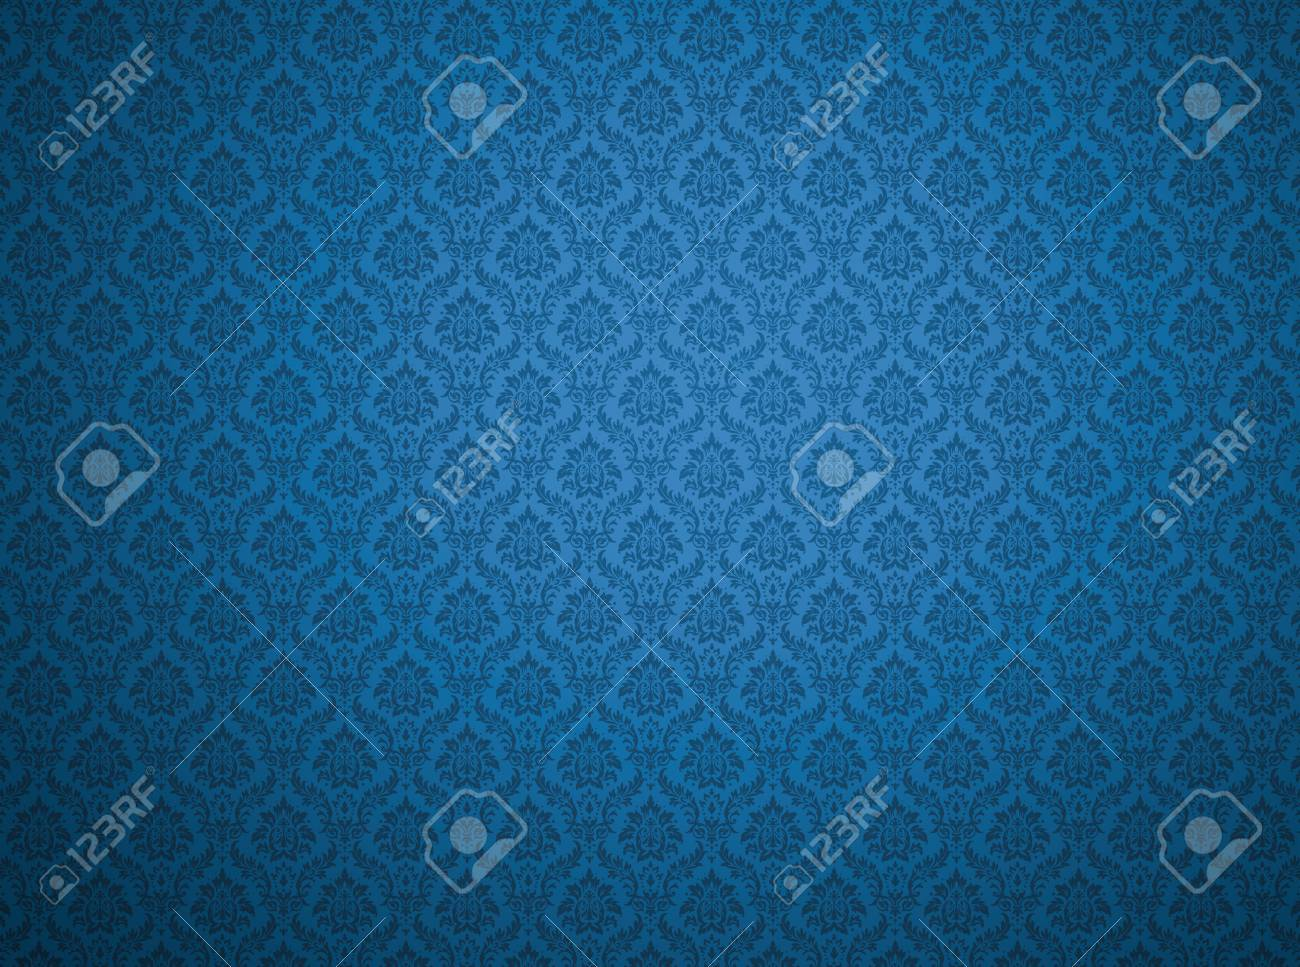 Blue Damask Wallpaper With Floral Patterns Stock Photo